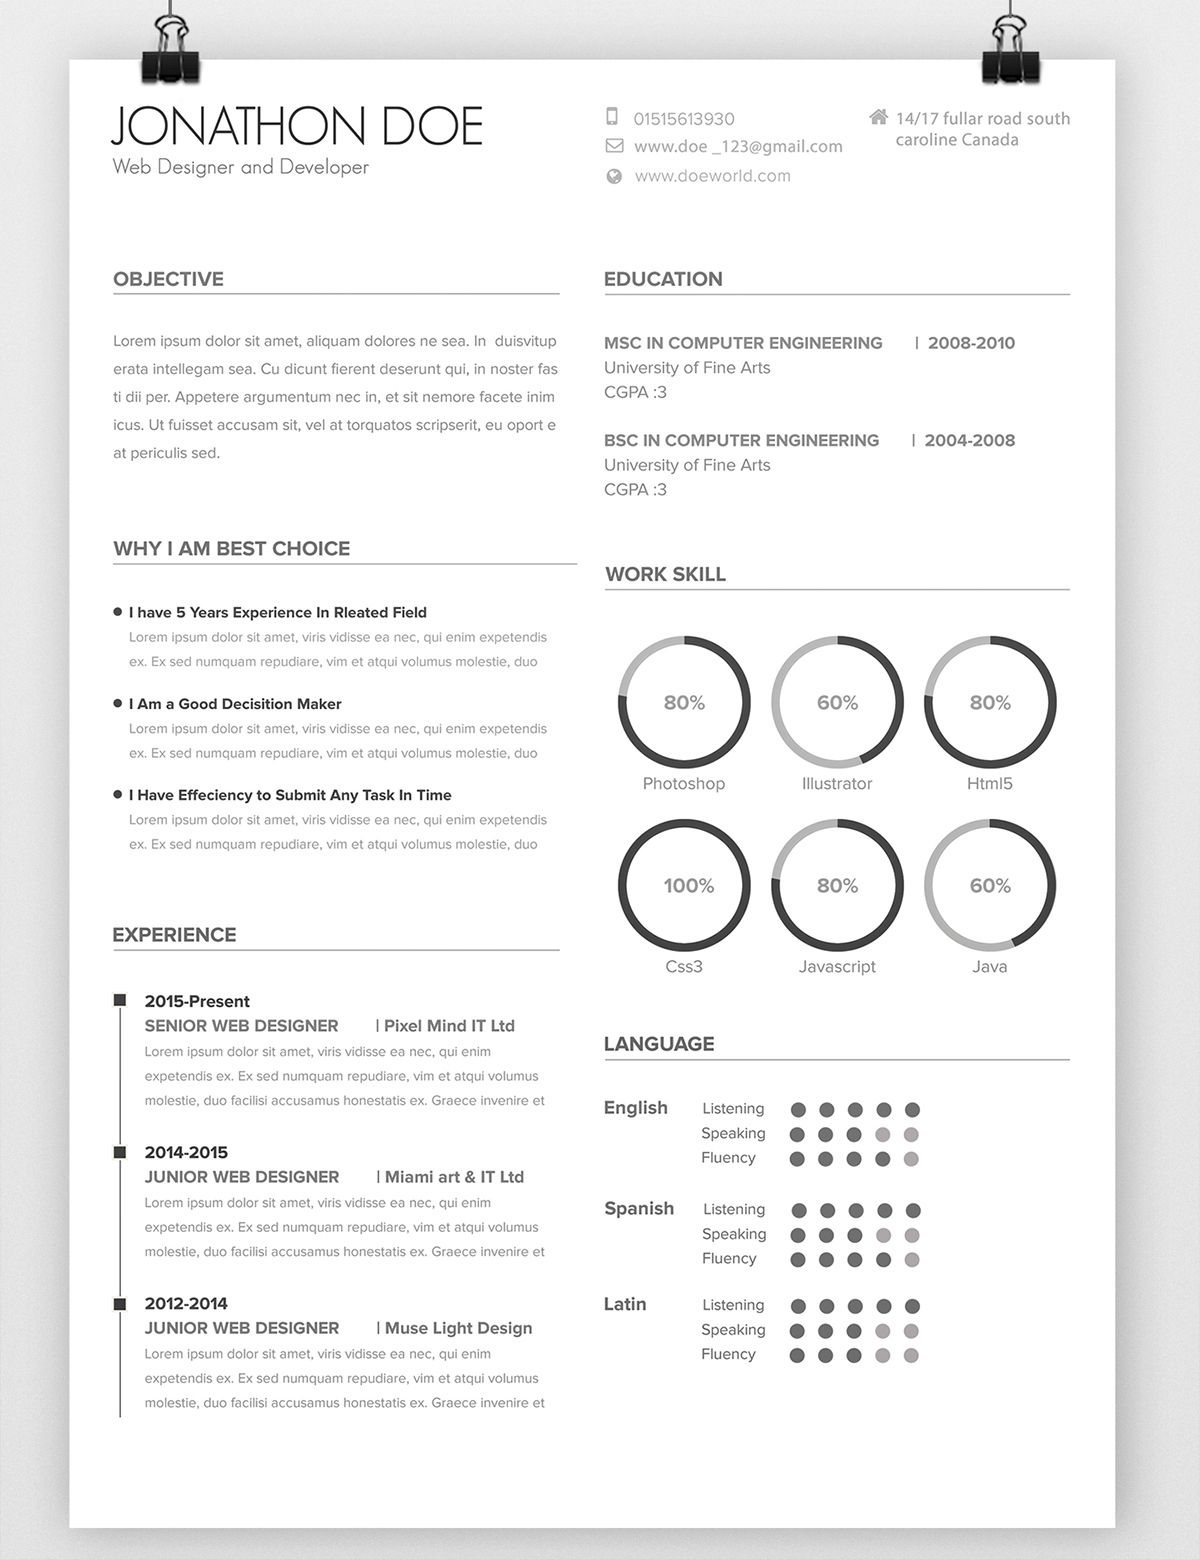 behance resume template example-Avada Minimal Resume on Behance 5-d